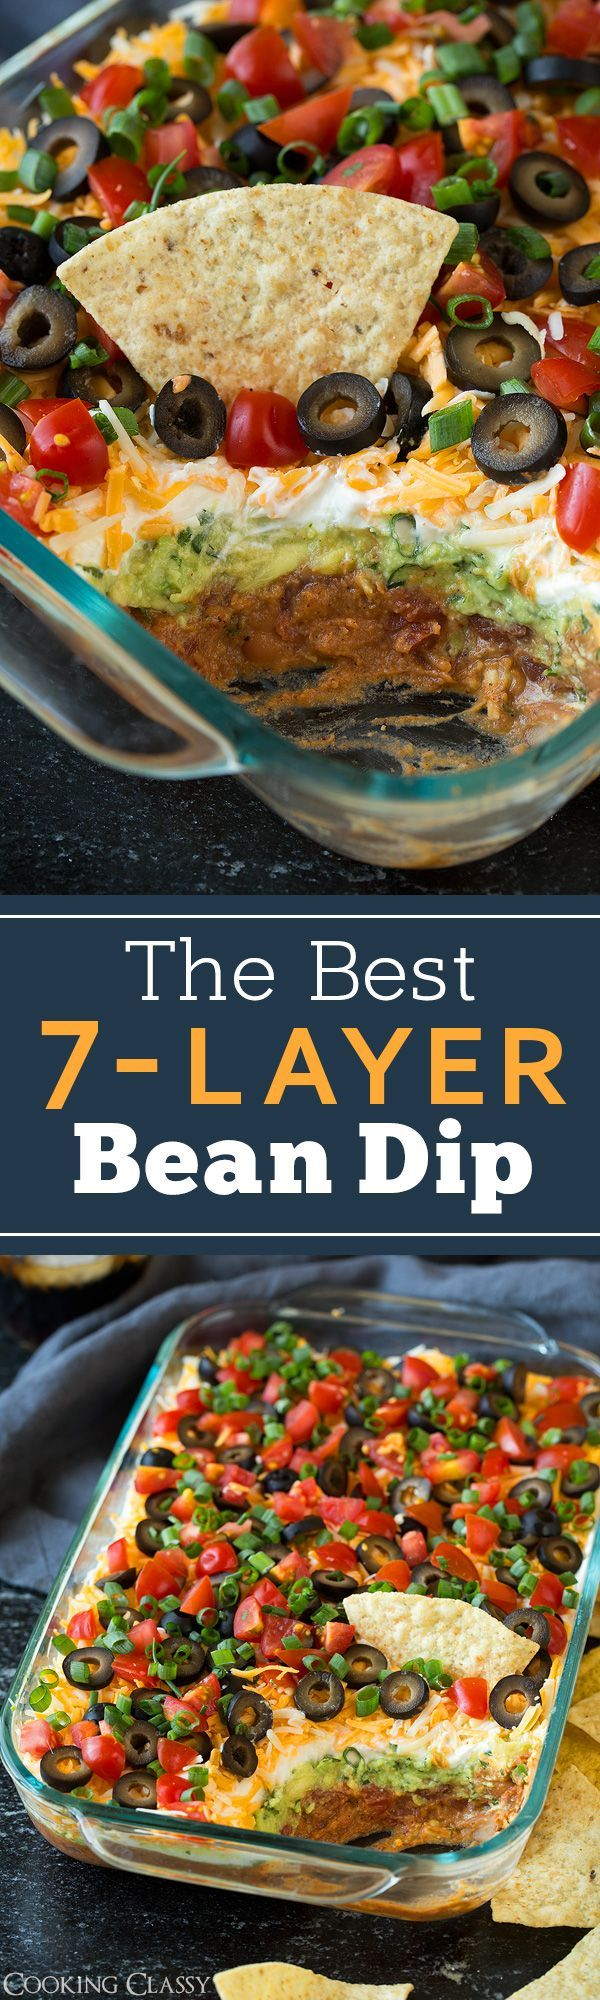 7-Layer Bean Dip - Cooking Classy